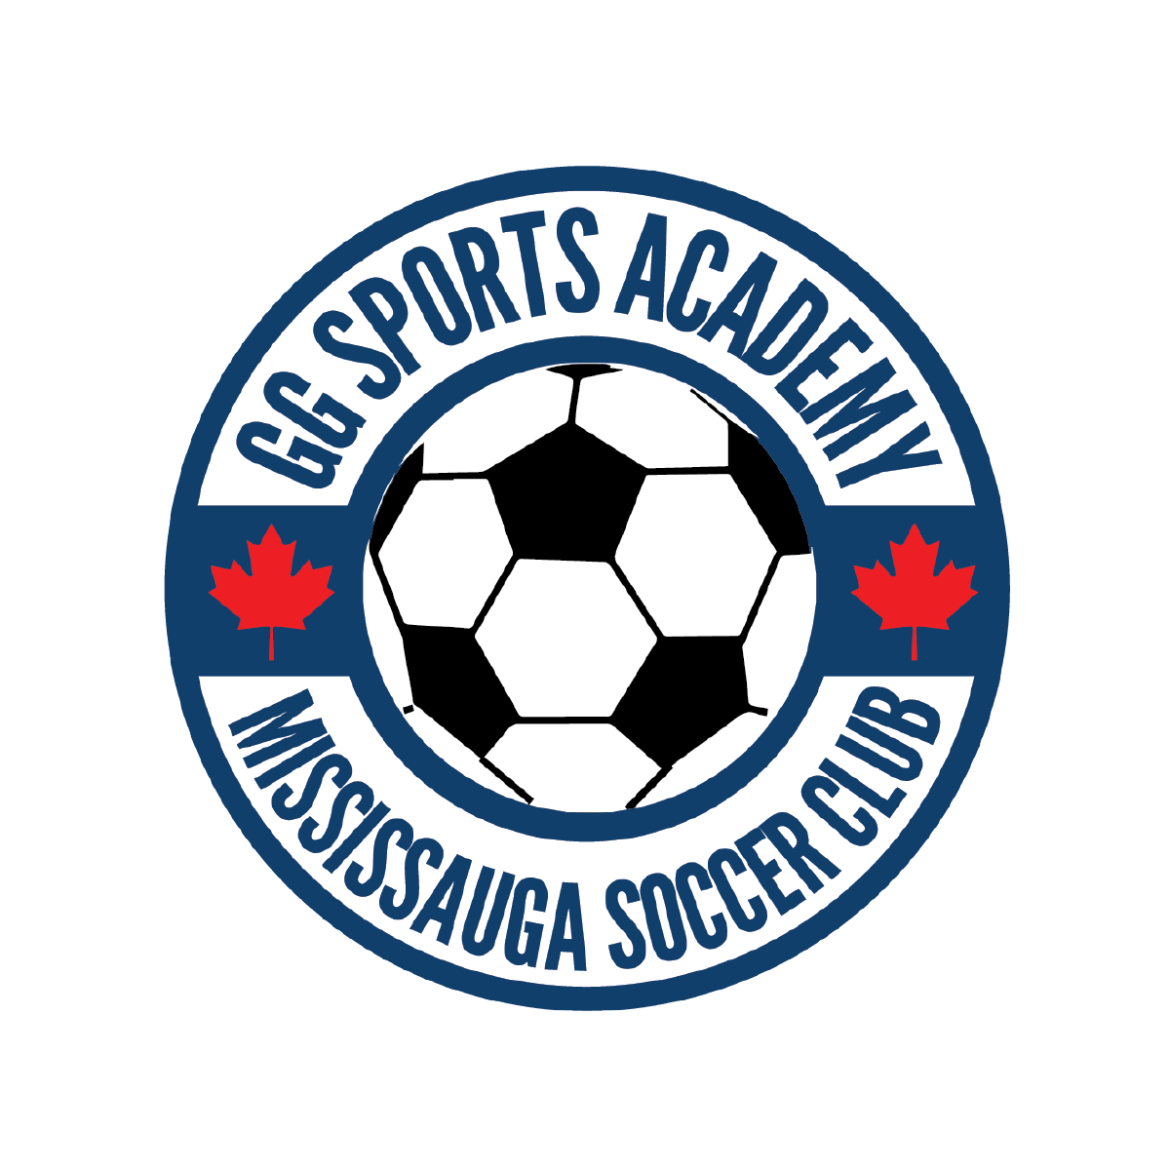 Mississauga Sports and Soccer Academy (Logo Concept for sports club)